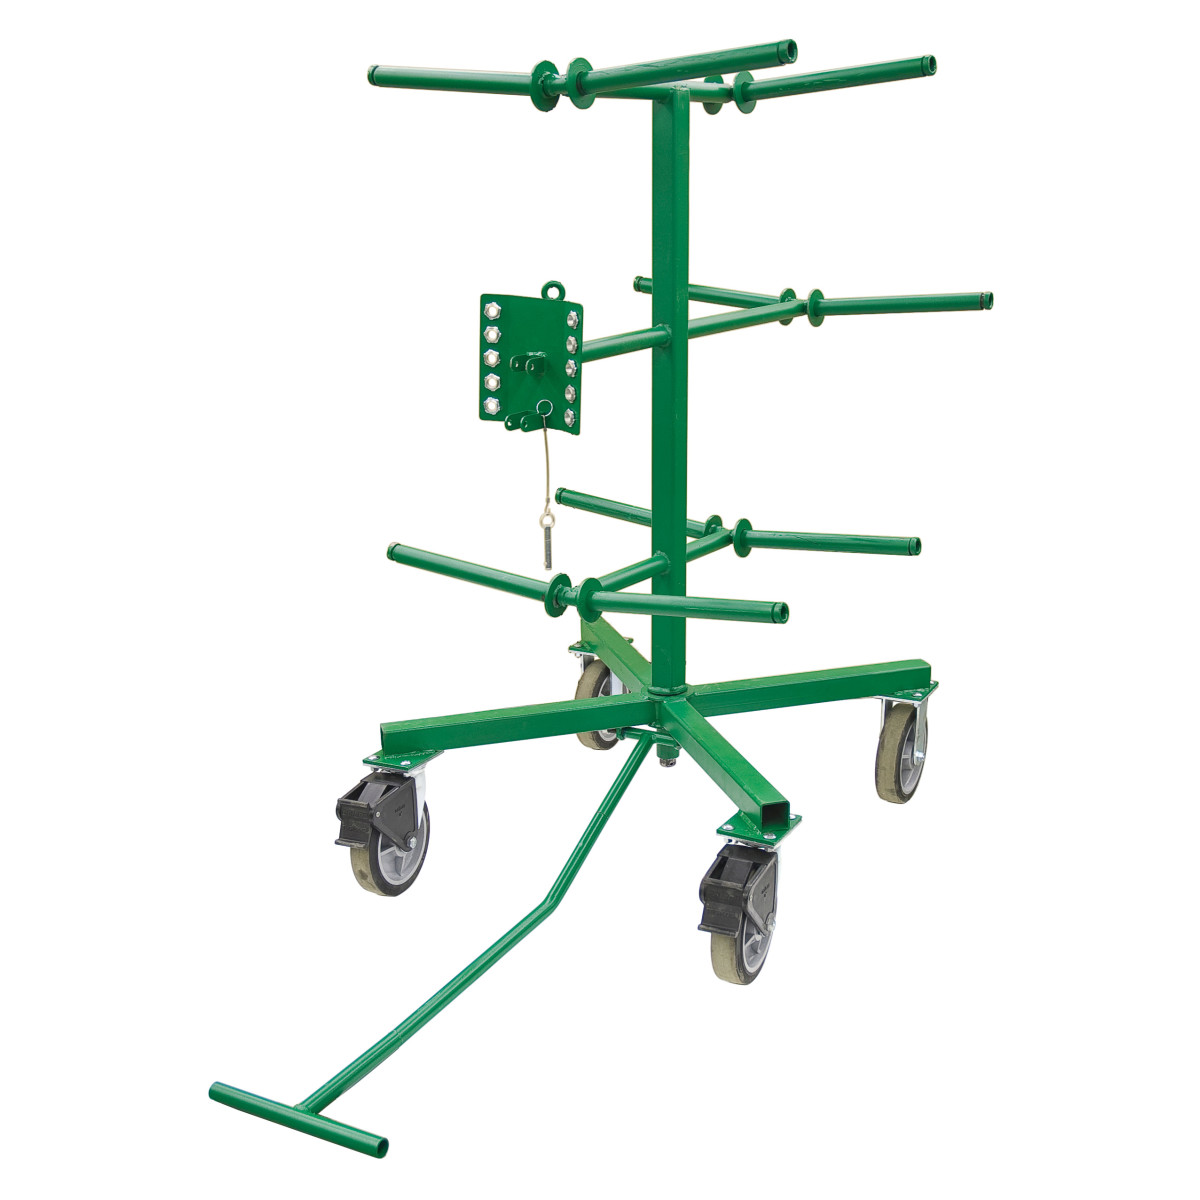 Greenlee 910 WIRE DISPENSER ASSEMBLY